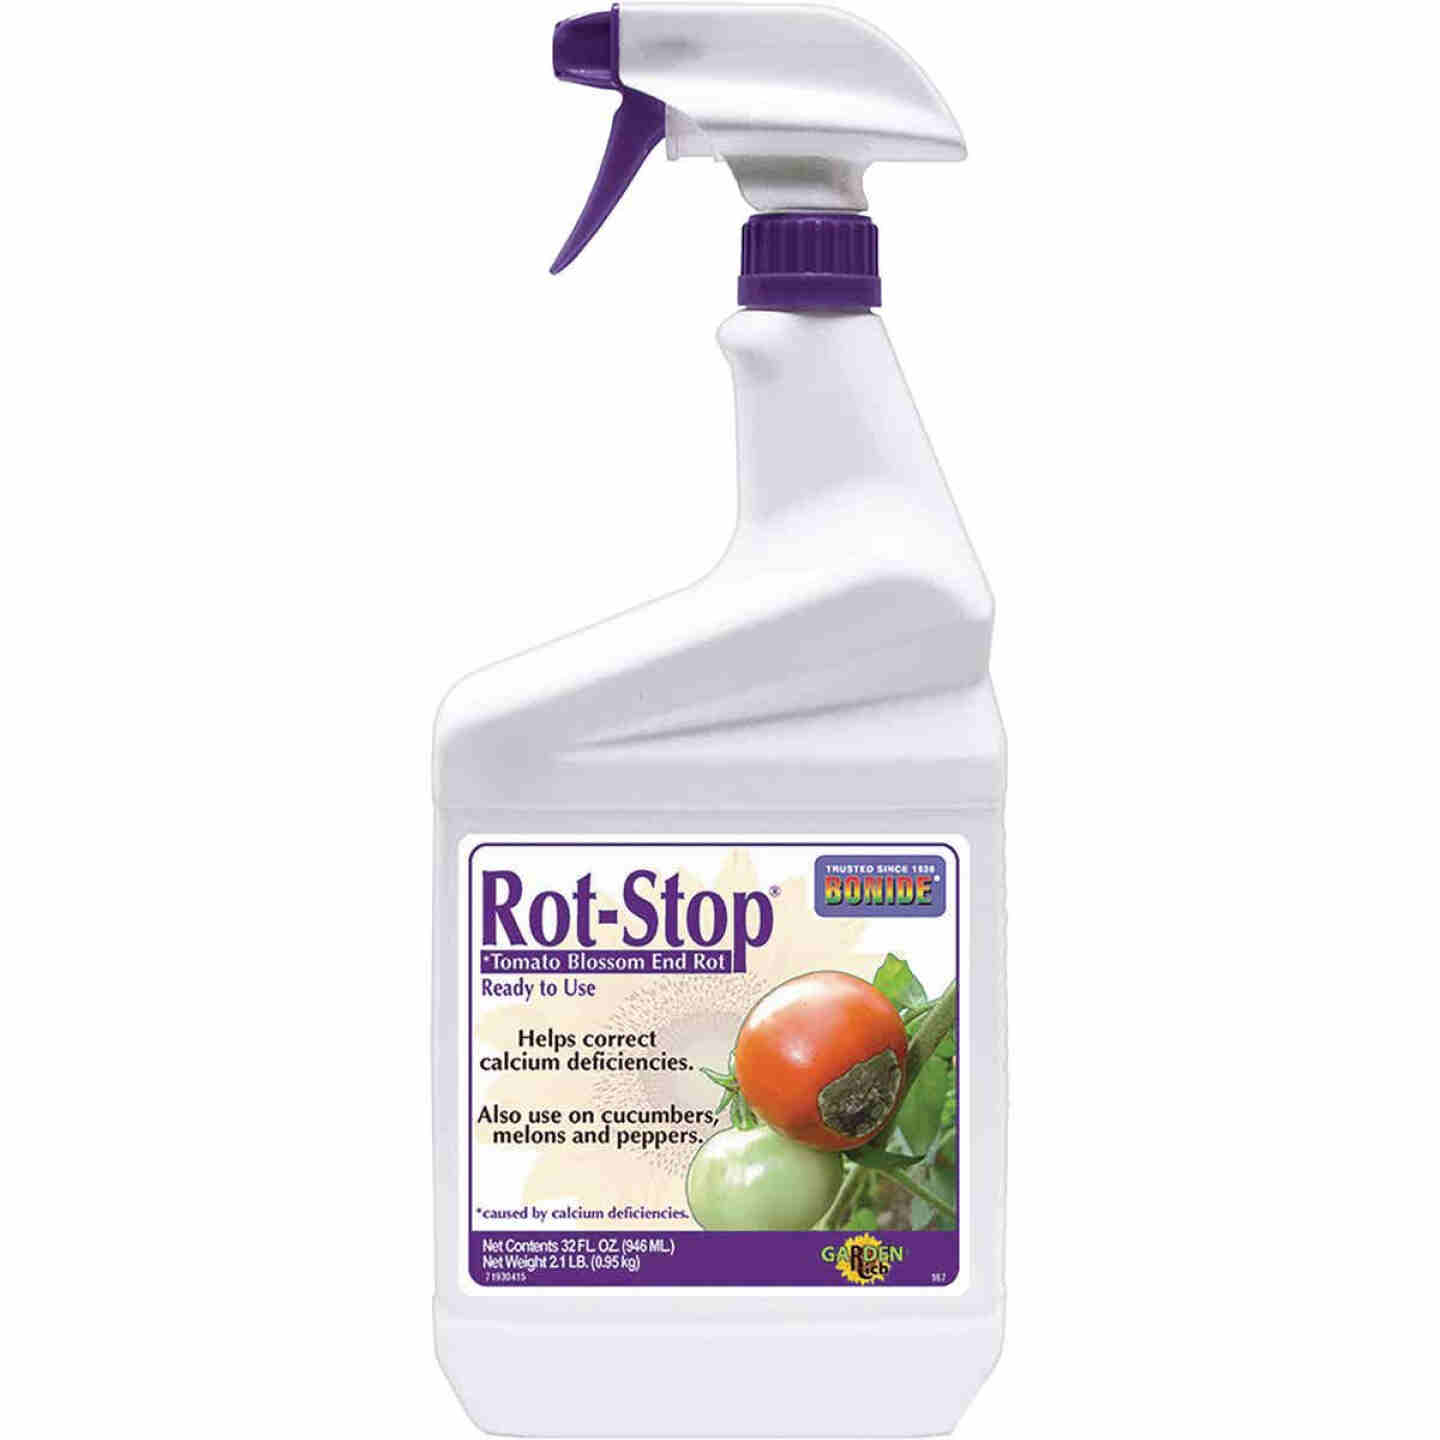 Bonide Rot Stop 32 Oz. Ready To Use Trigger Spray Blossom End Rot Preventer Image 1